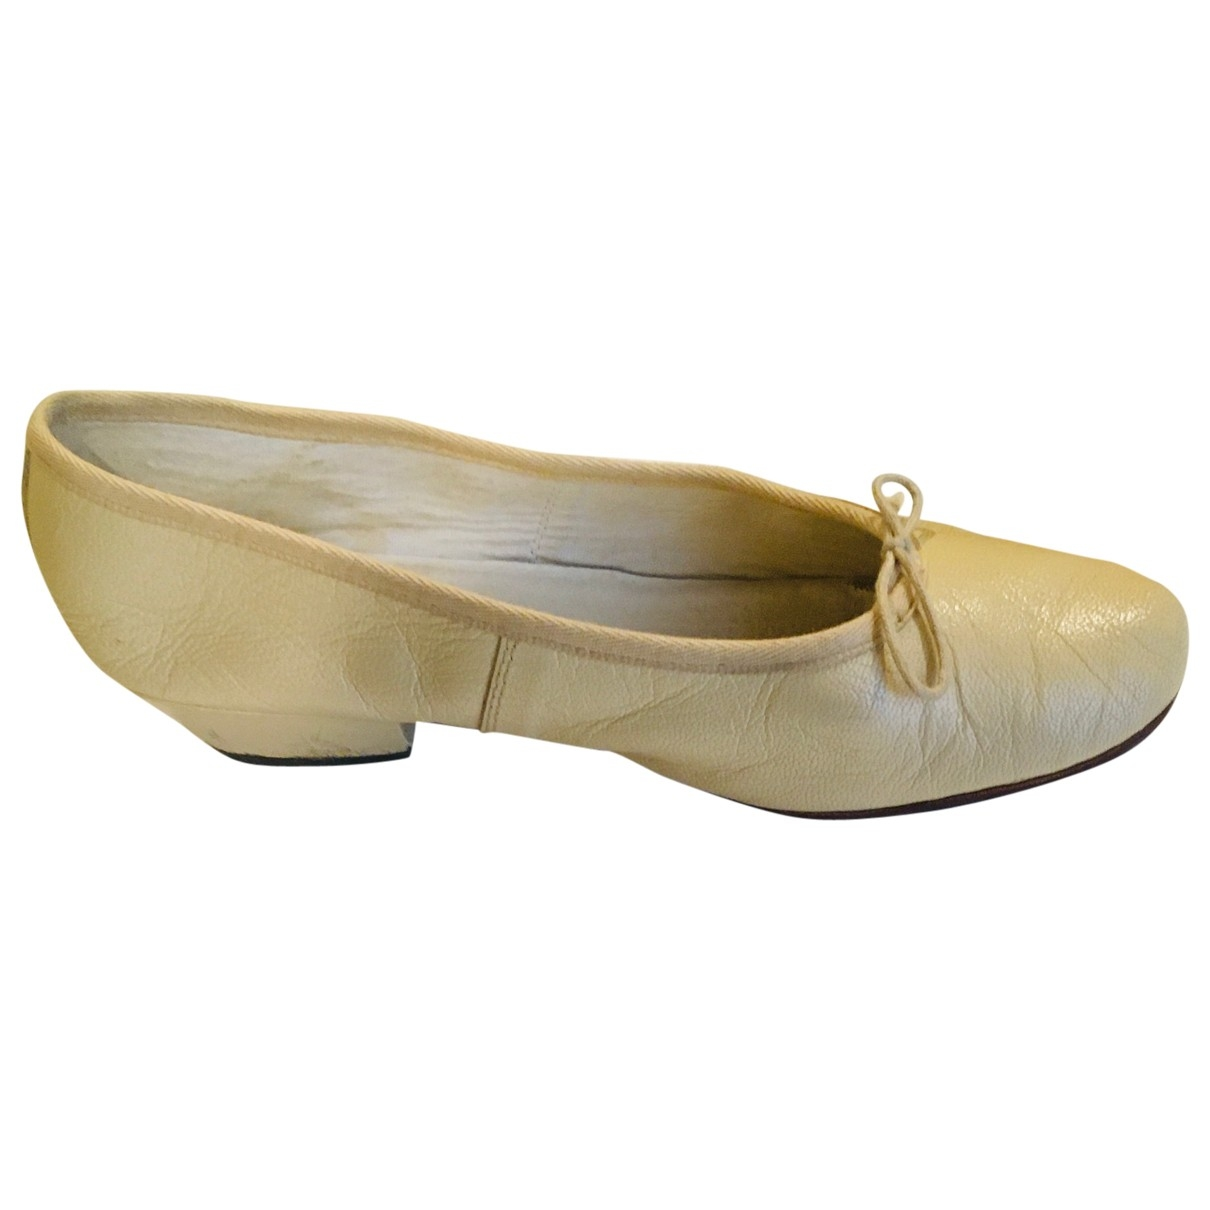 Repetto \N Beige Leather Ballet flats for Women 40.5 EU